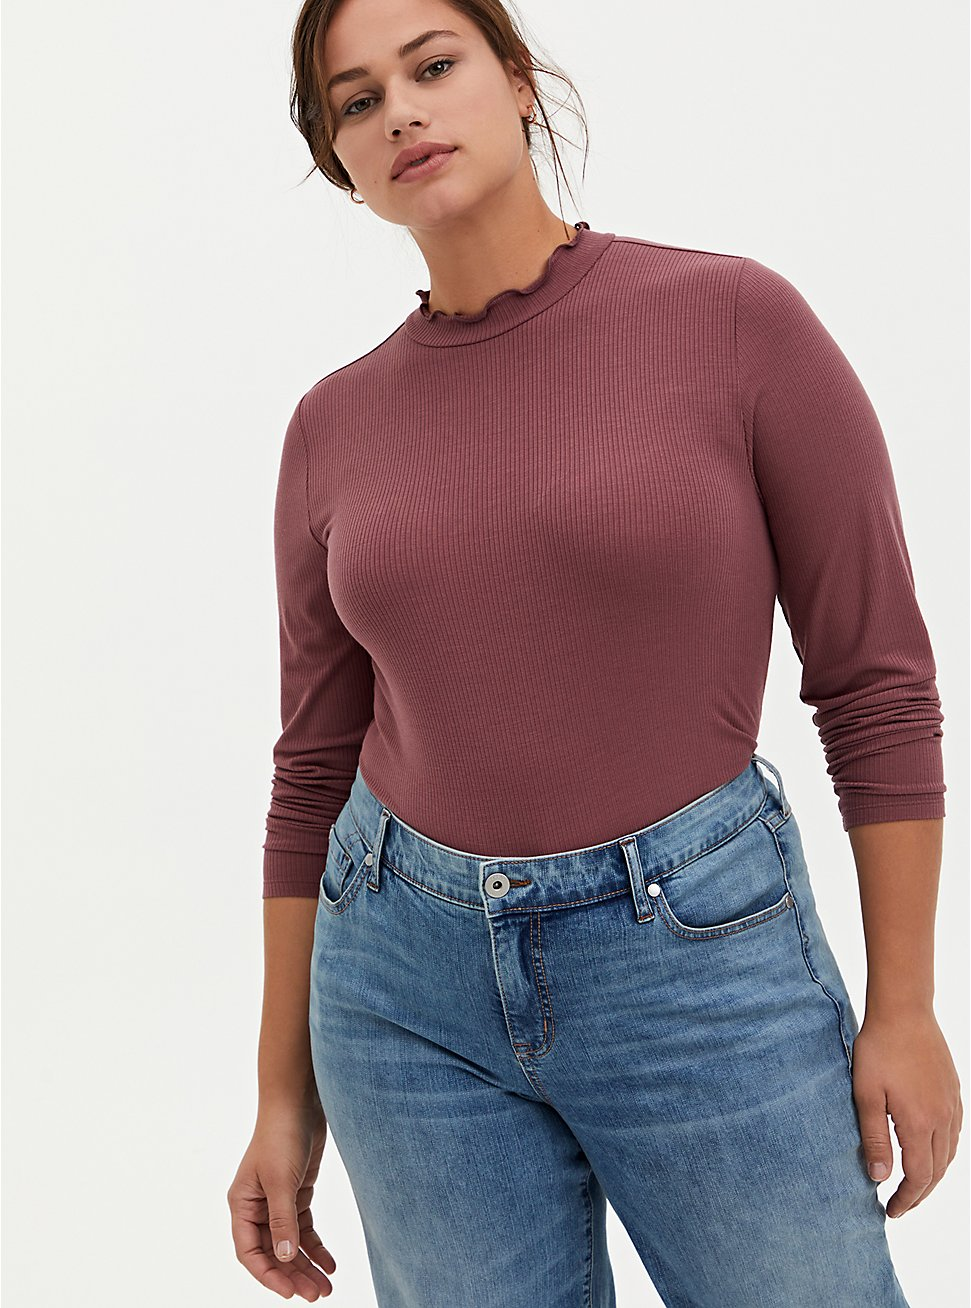 Plus Size  Dusty Pink Mock Neck Ribbed Lettuce Edge Tee, , hi-res